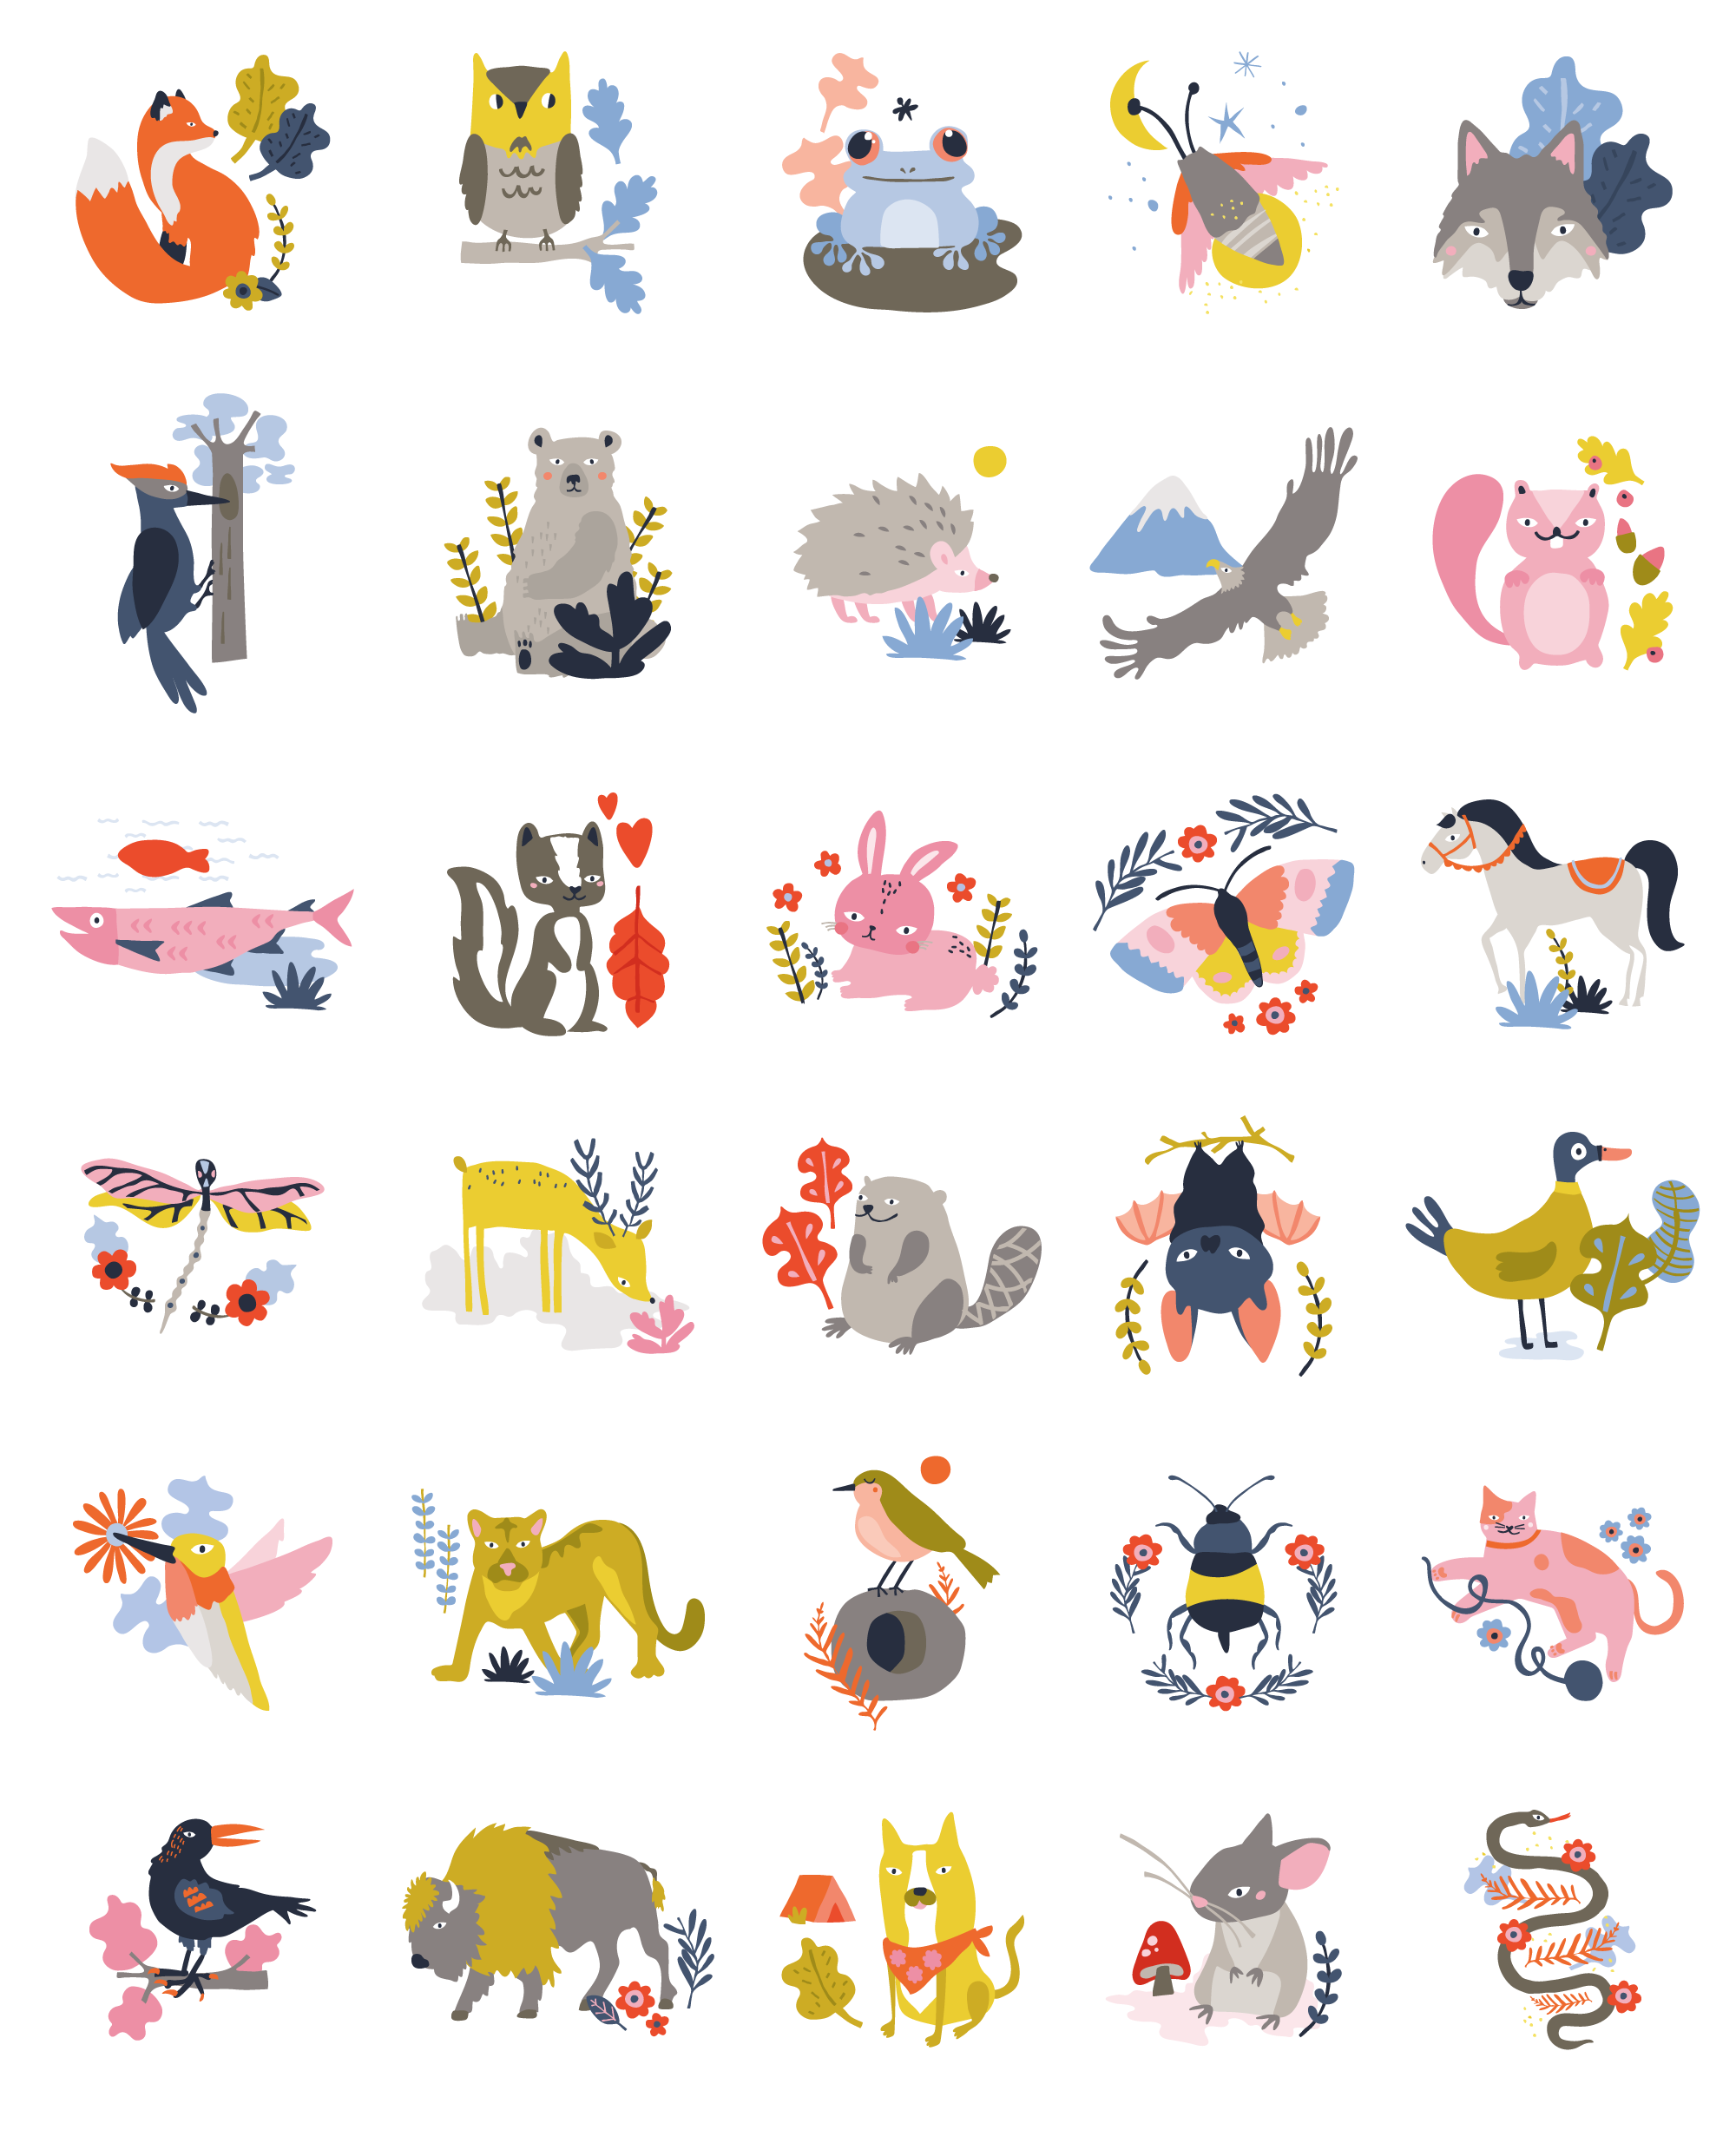 _Ohlala-Project-Planner_Animales+Planetas.png